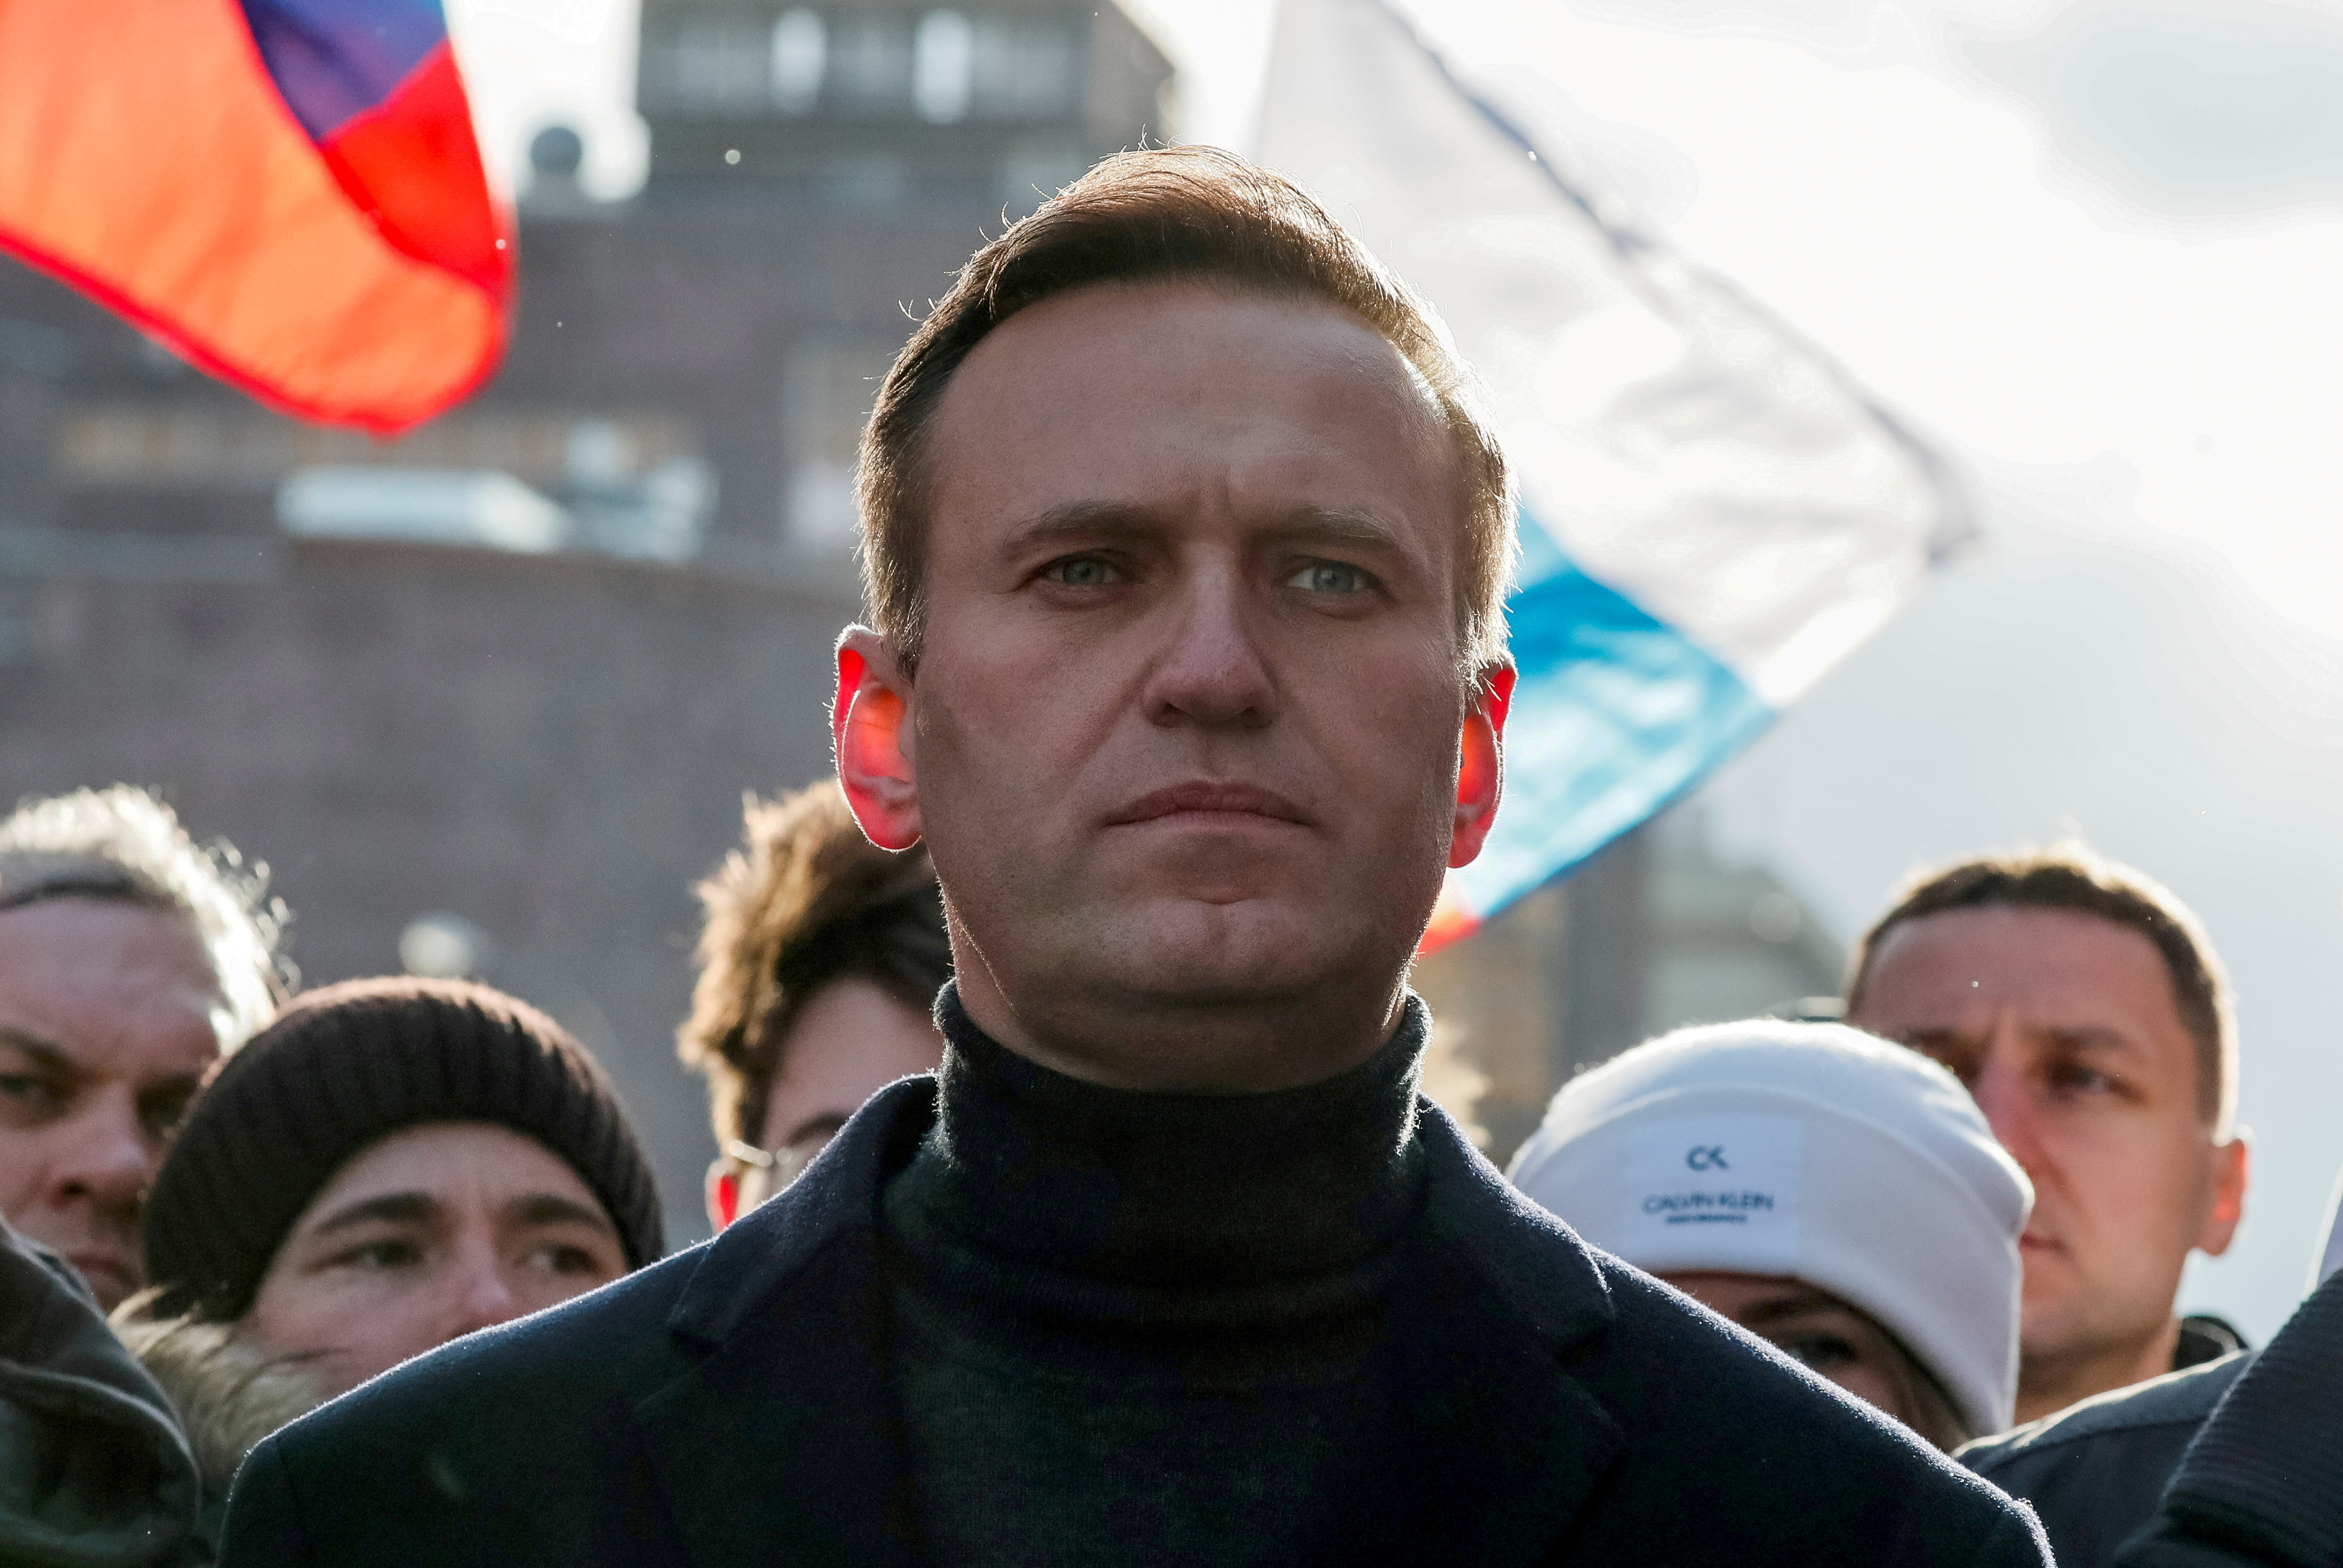 Russian opposition politician Alexei Navalny takes part in a rally in Moscow, Russia February 29, 2020. REUTERS/Shamil Zhumatov/File Photo